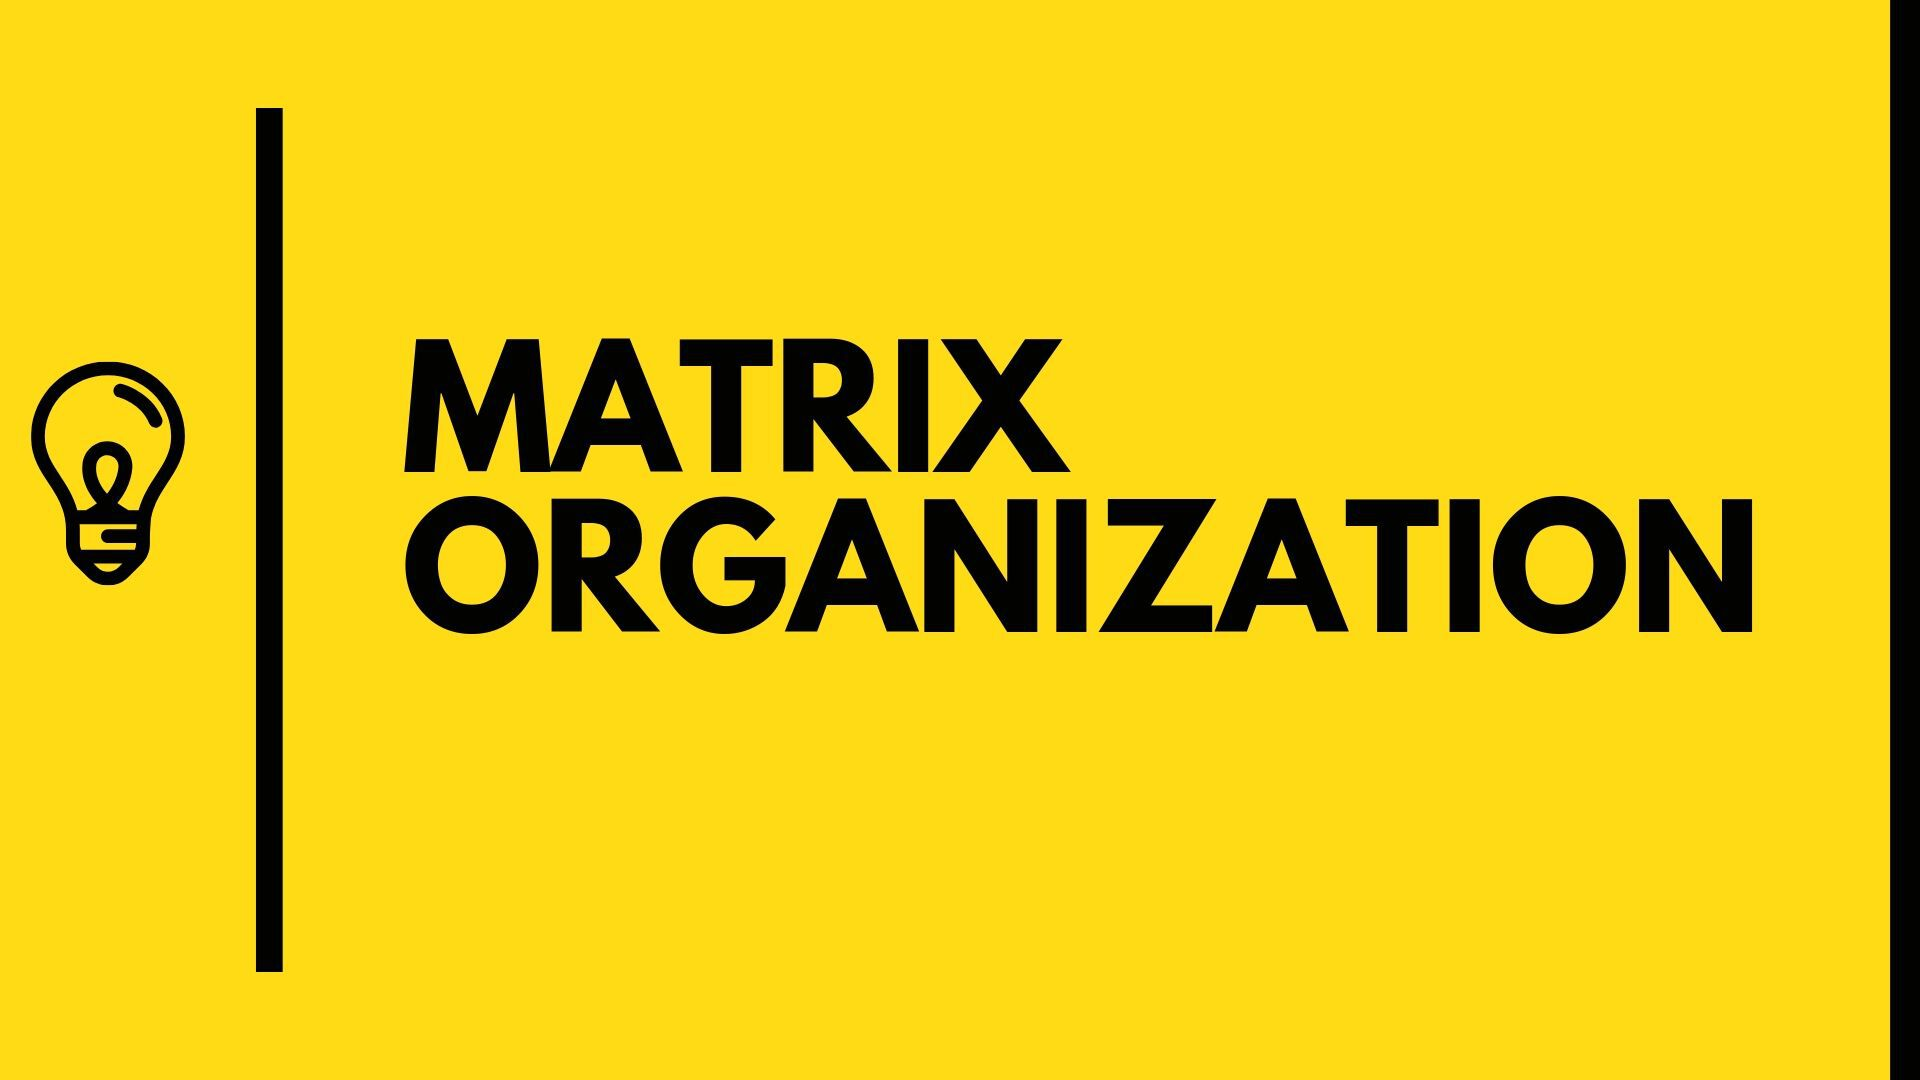 What is Matrix Organization